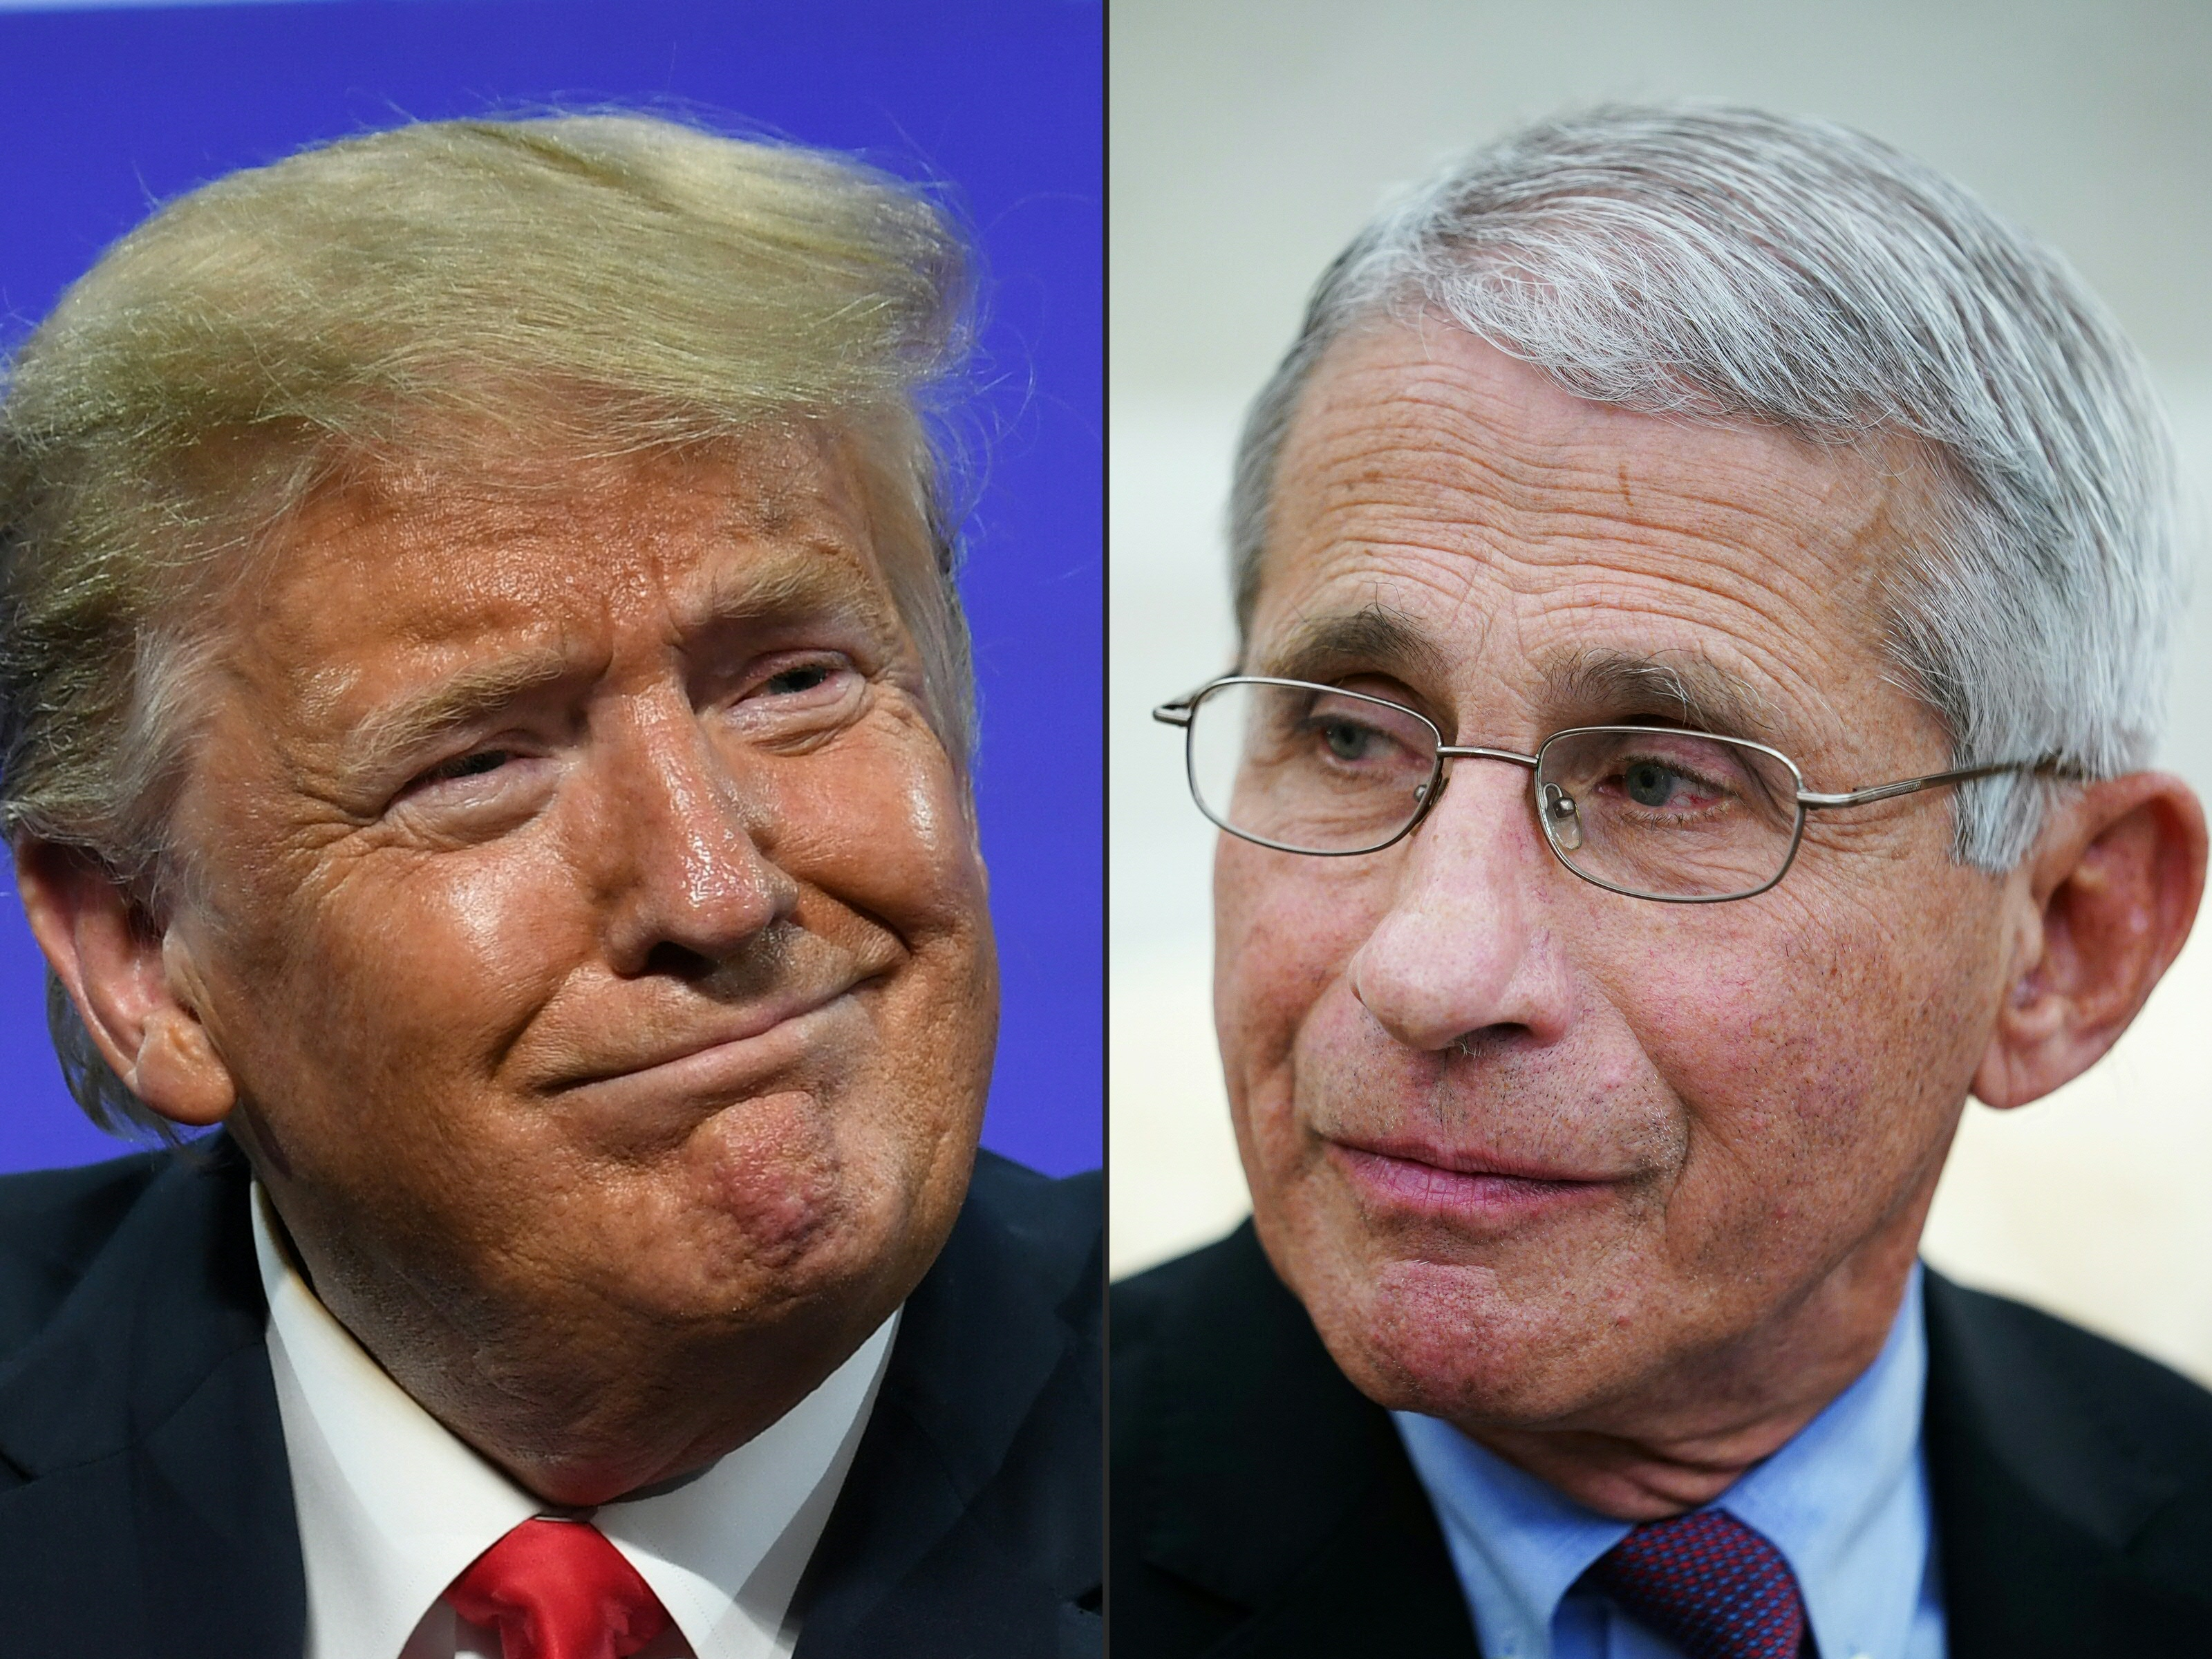 """Anthony Fauci responded to President Donald Trump's recent criticism saying he was a """"realist."""" (Photos: Saul Loeb and Mandel Ngan/AFP via Getty Images)"""